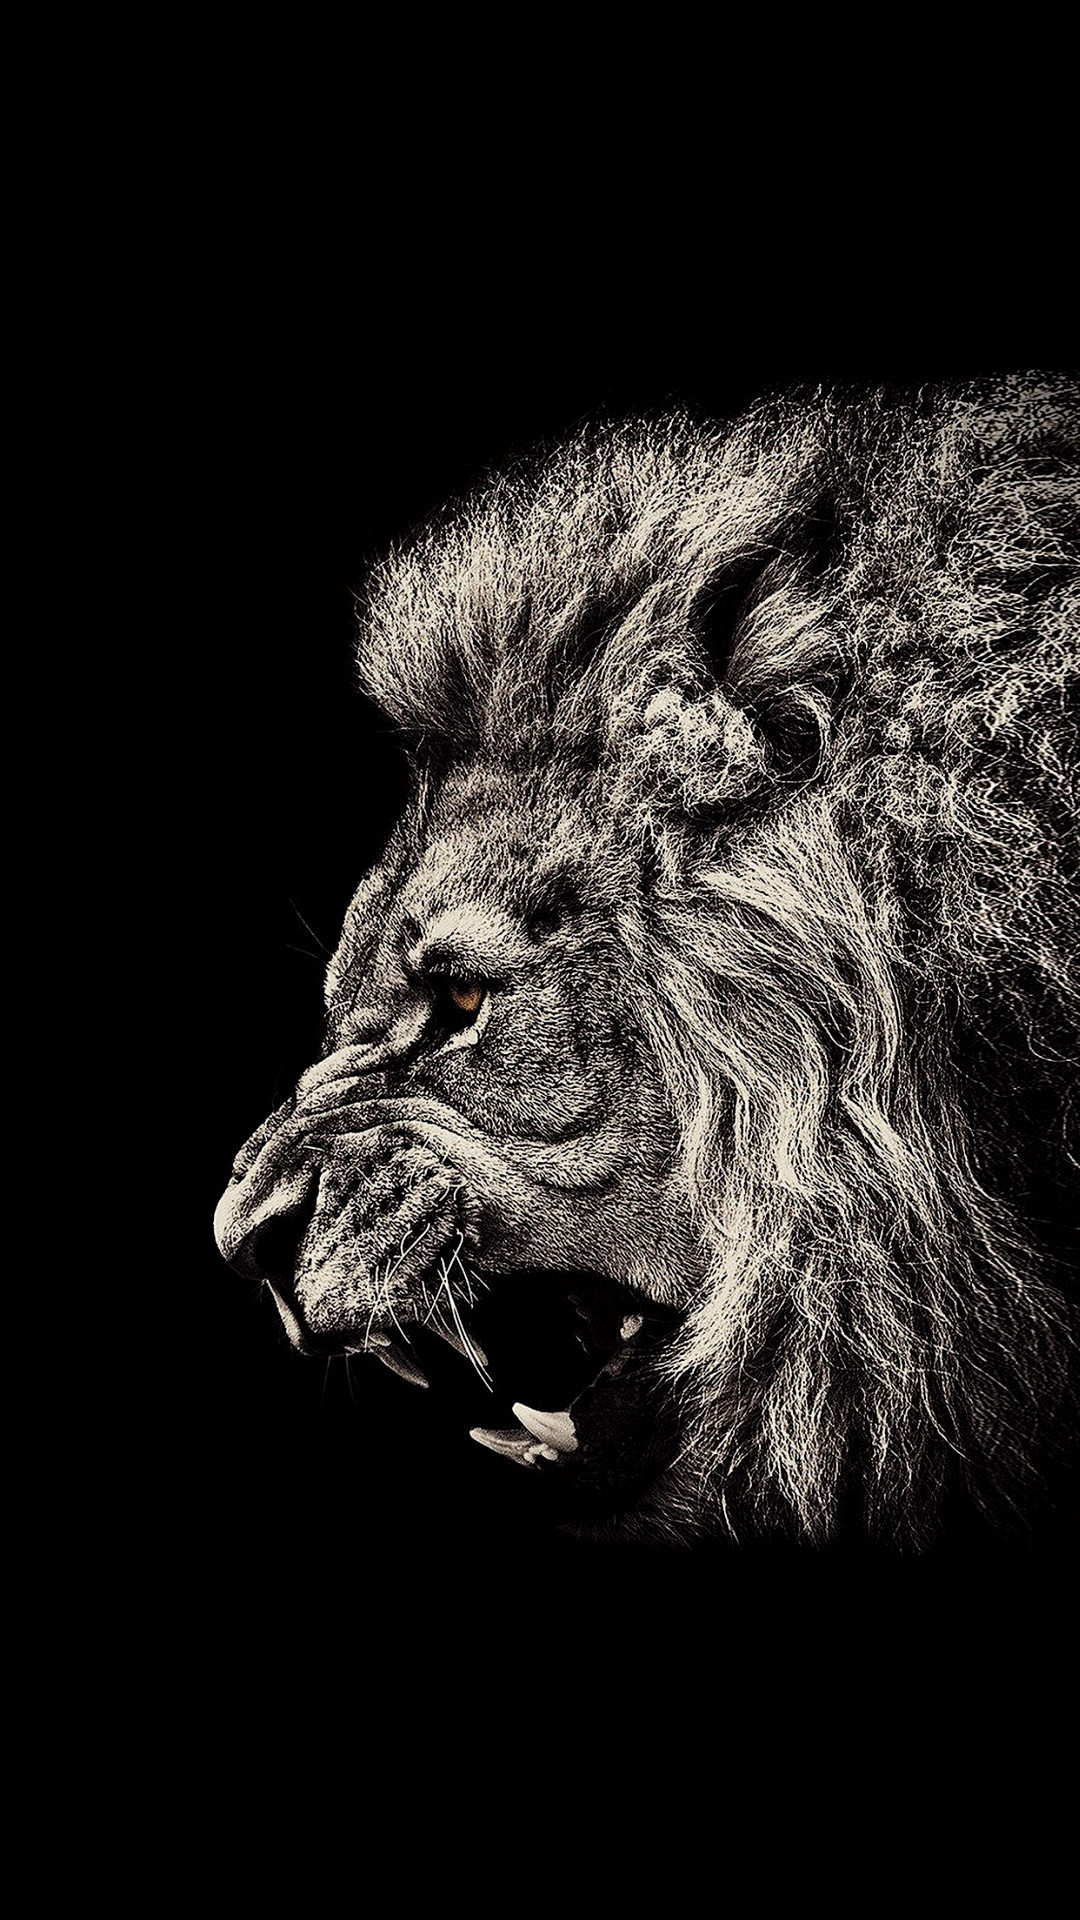 black-iphone-Lion-Black-Amoled-1080x1920-Need-iPhone-S-Plus-Background-for-IPhoneS-wallpap-wallpaper-wpc9203073